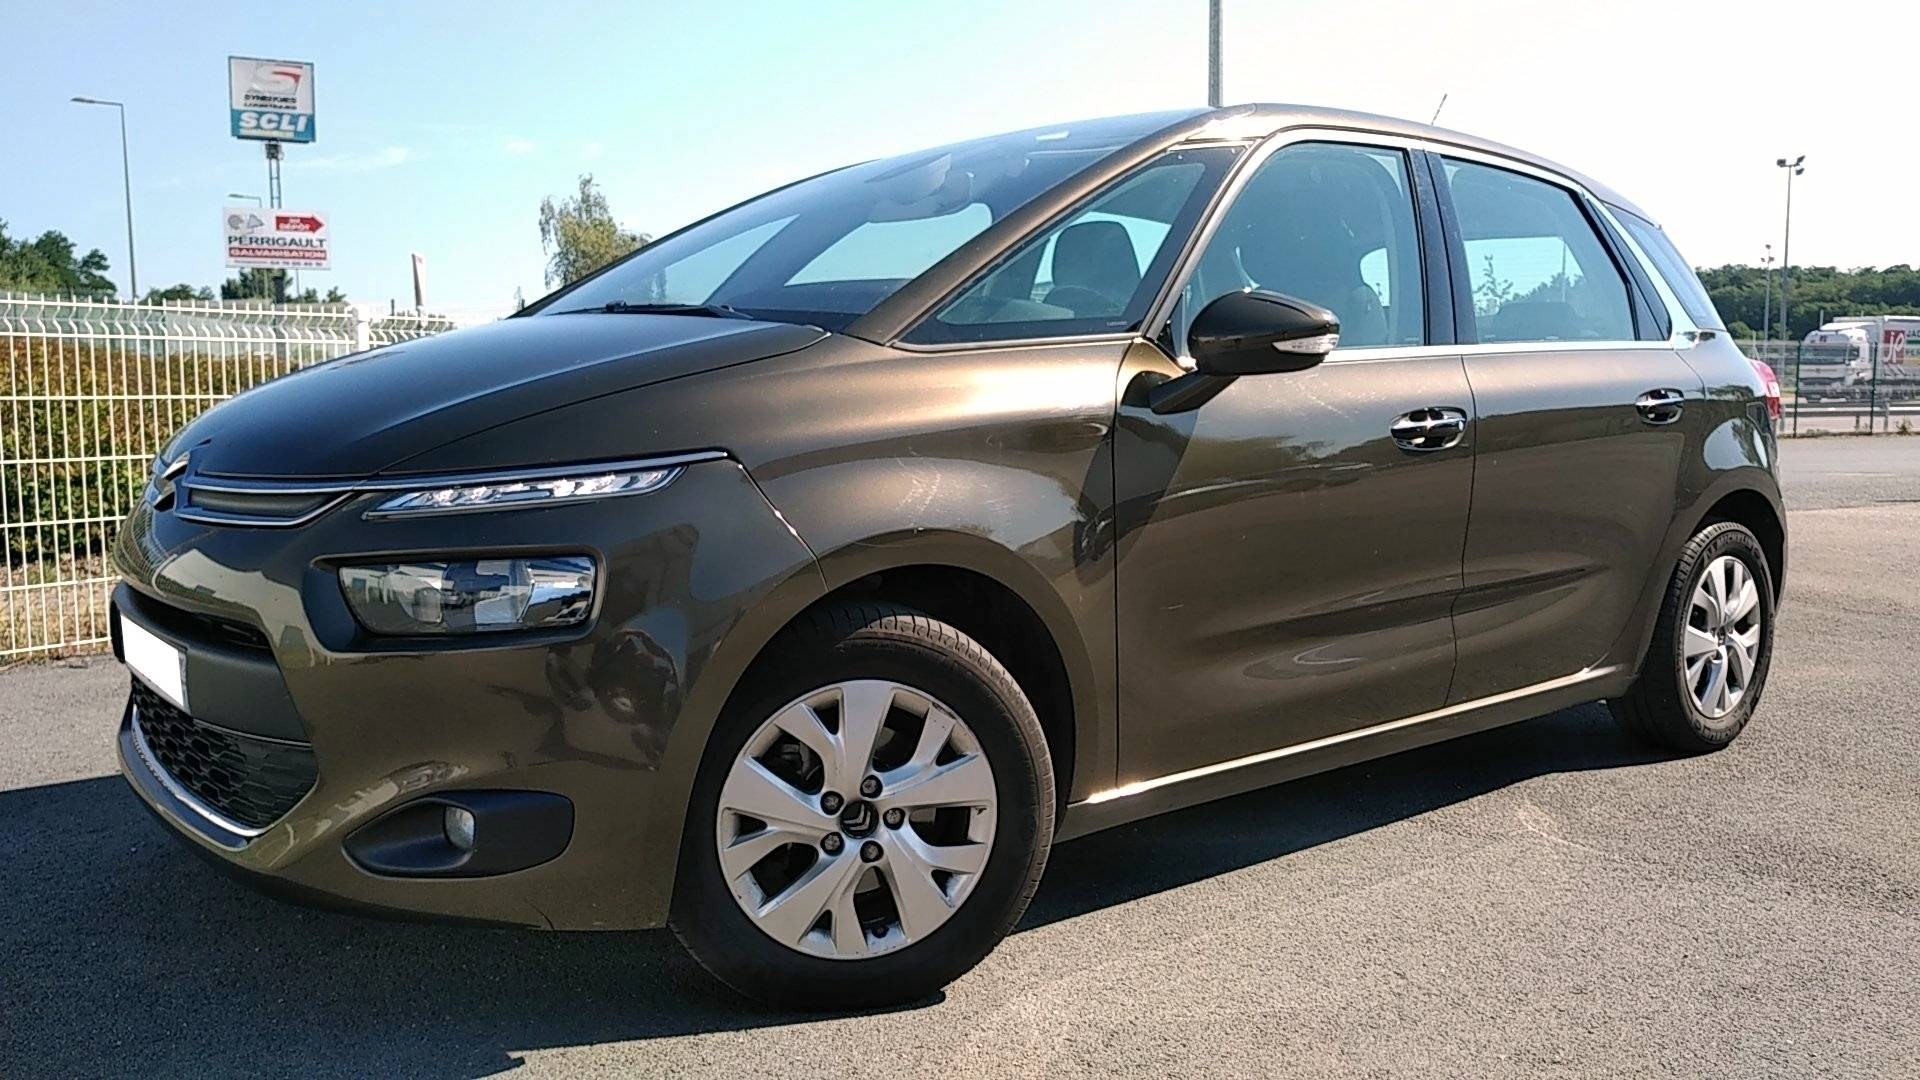 citroen c4 picasso d 39 occasion 1 6 hdi 115 intensive riorges carizy. Black Bedroom Furniture Sets. Home Design Ideas